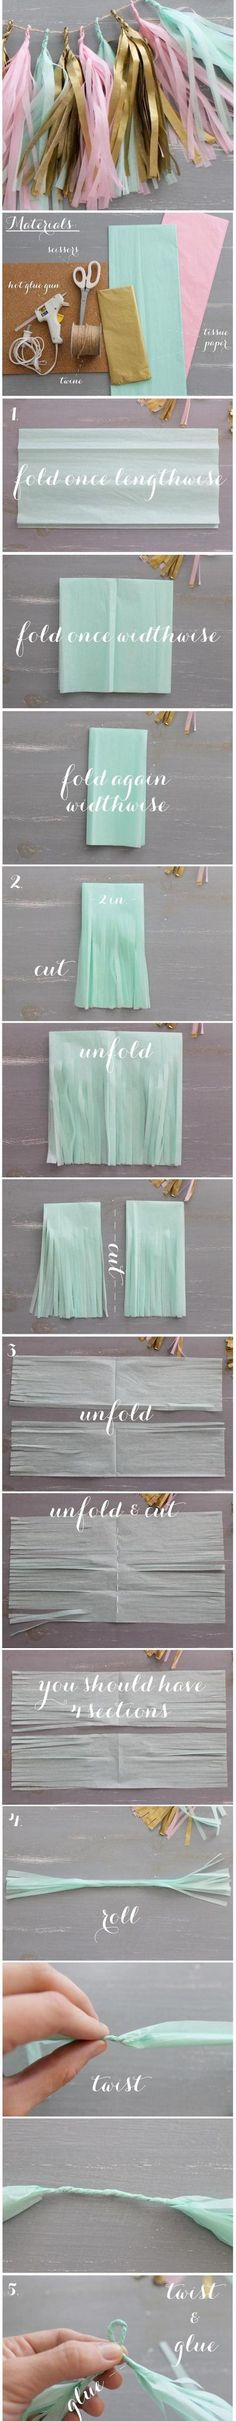 How to make tassel garland- perfect for a celebration & easy to make | via www.topinspired.com